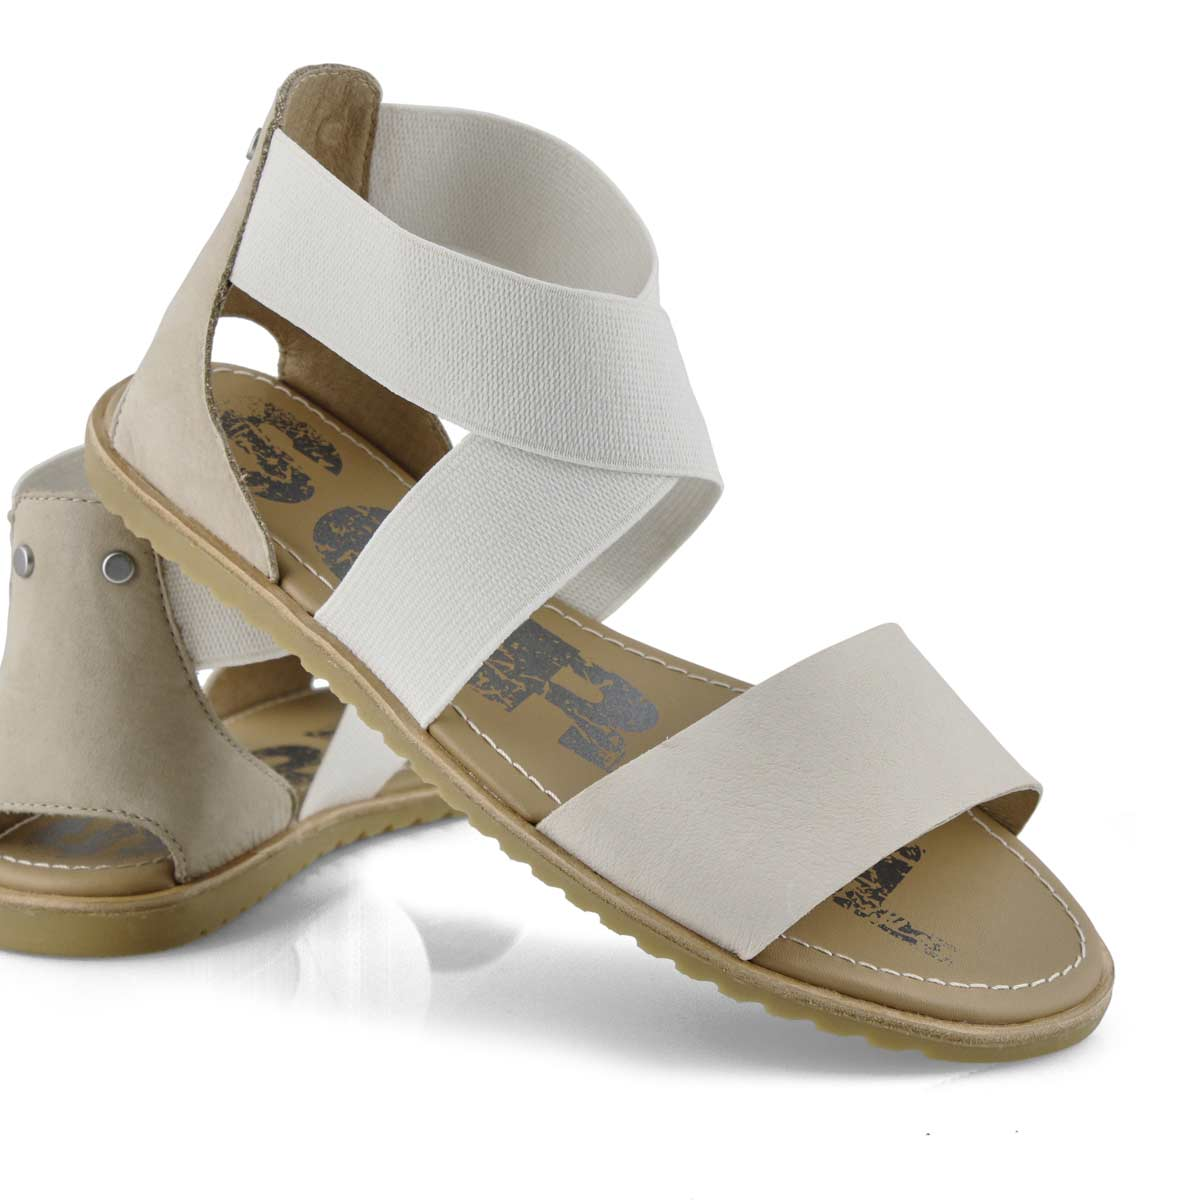 Lds Ella ancient fossil casual sandal